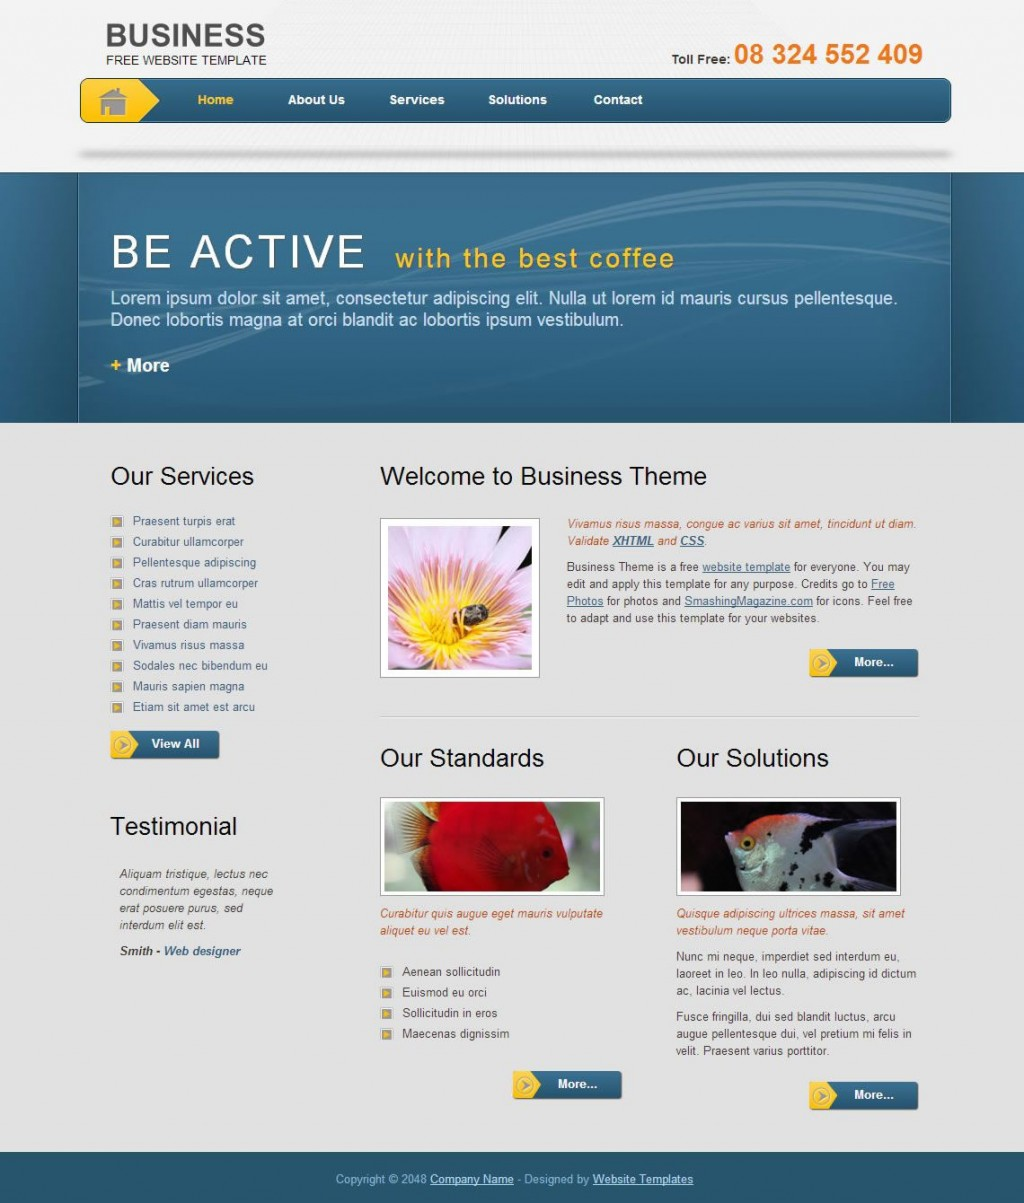 000 Fascinating Free Web Template Download Html And Cs For Busines Concept  Business Website Responsive WithLarge